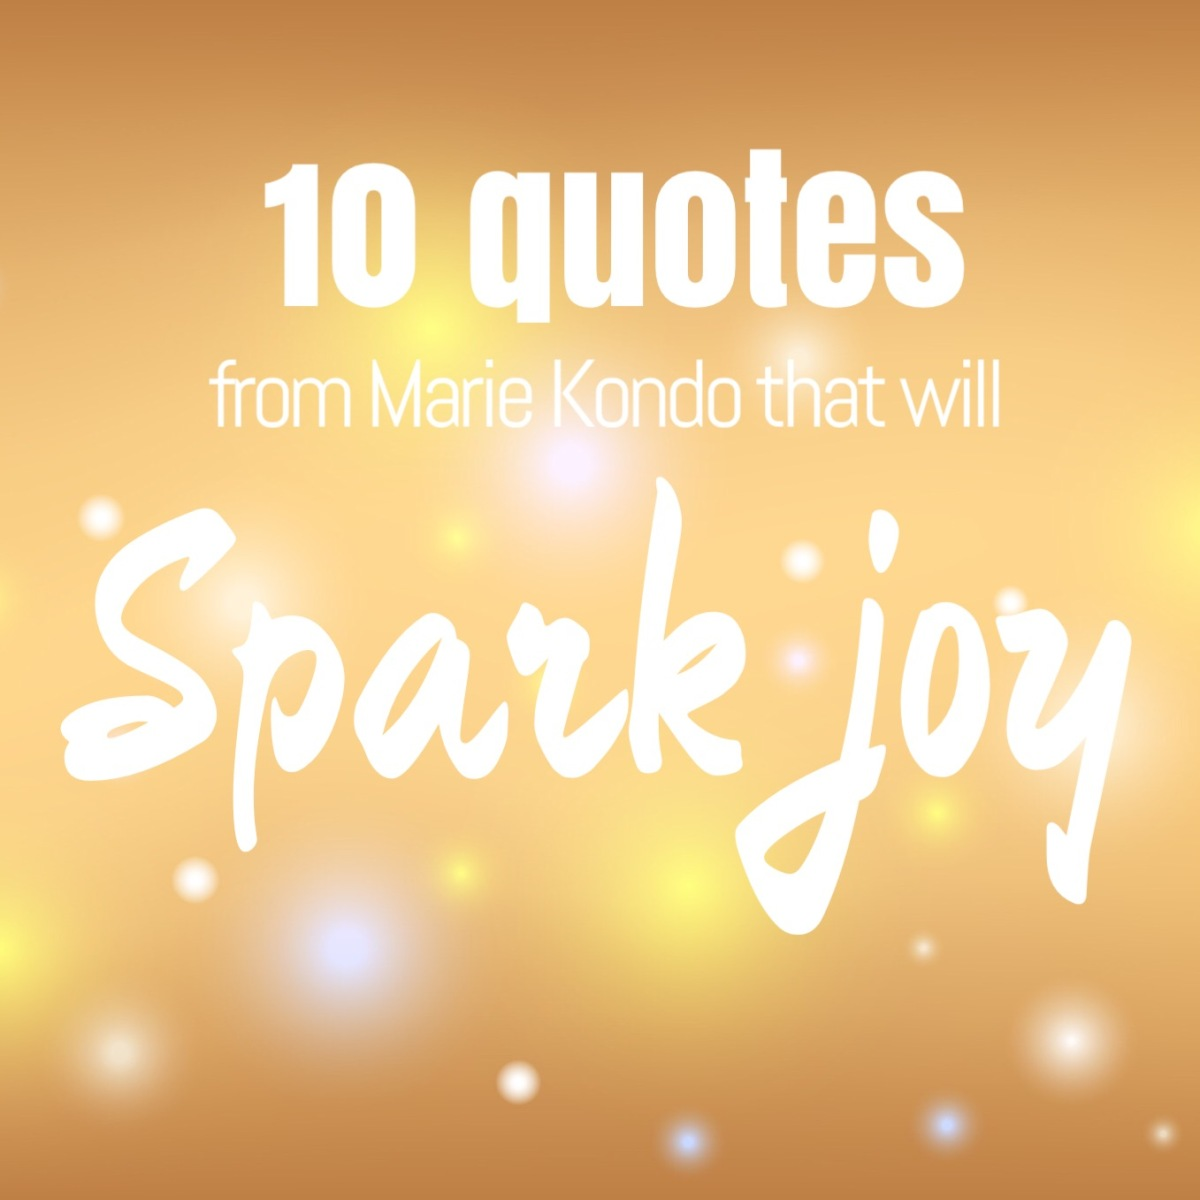 10 Quotes From Marie Kondo That Will 'Spark Joy'